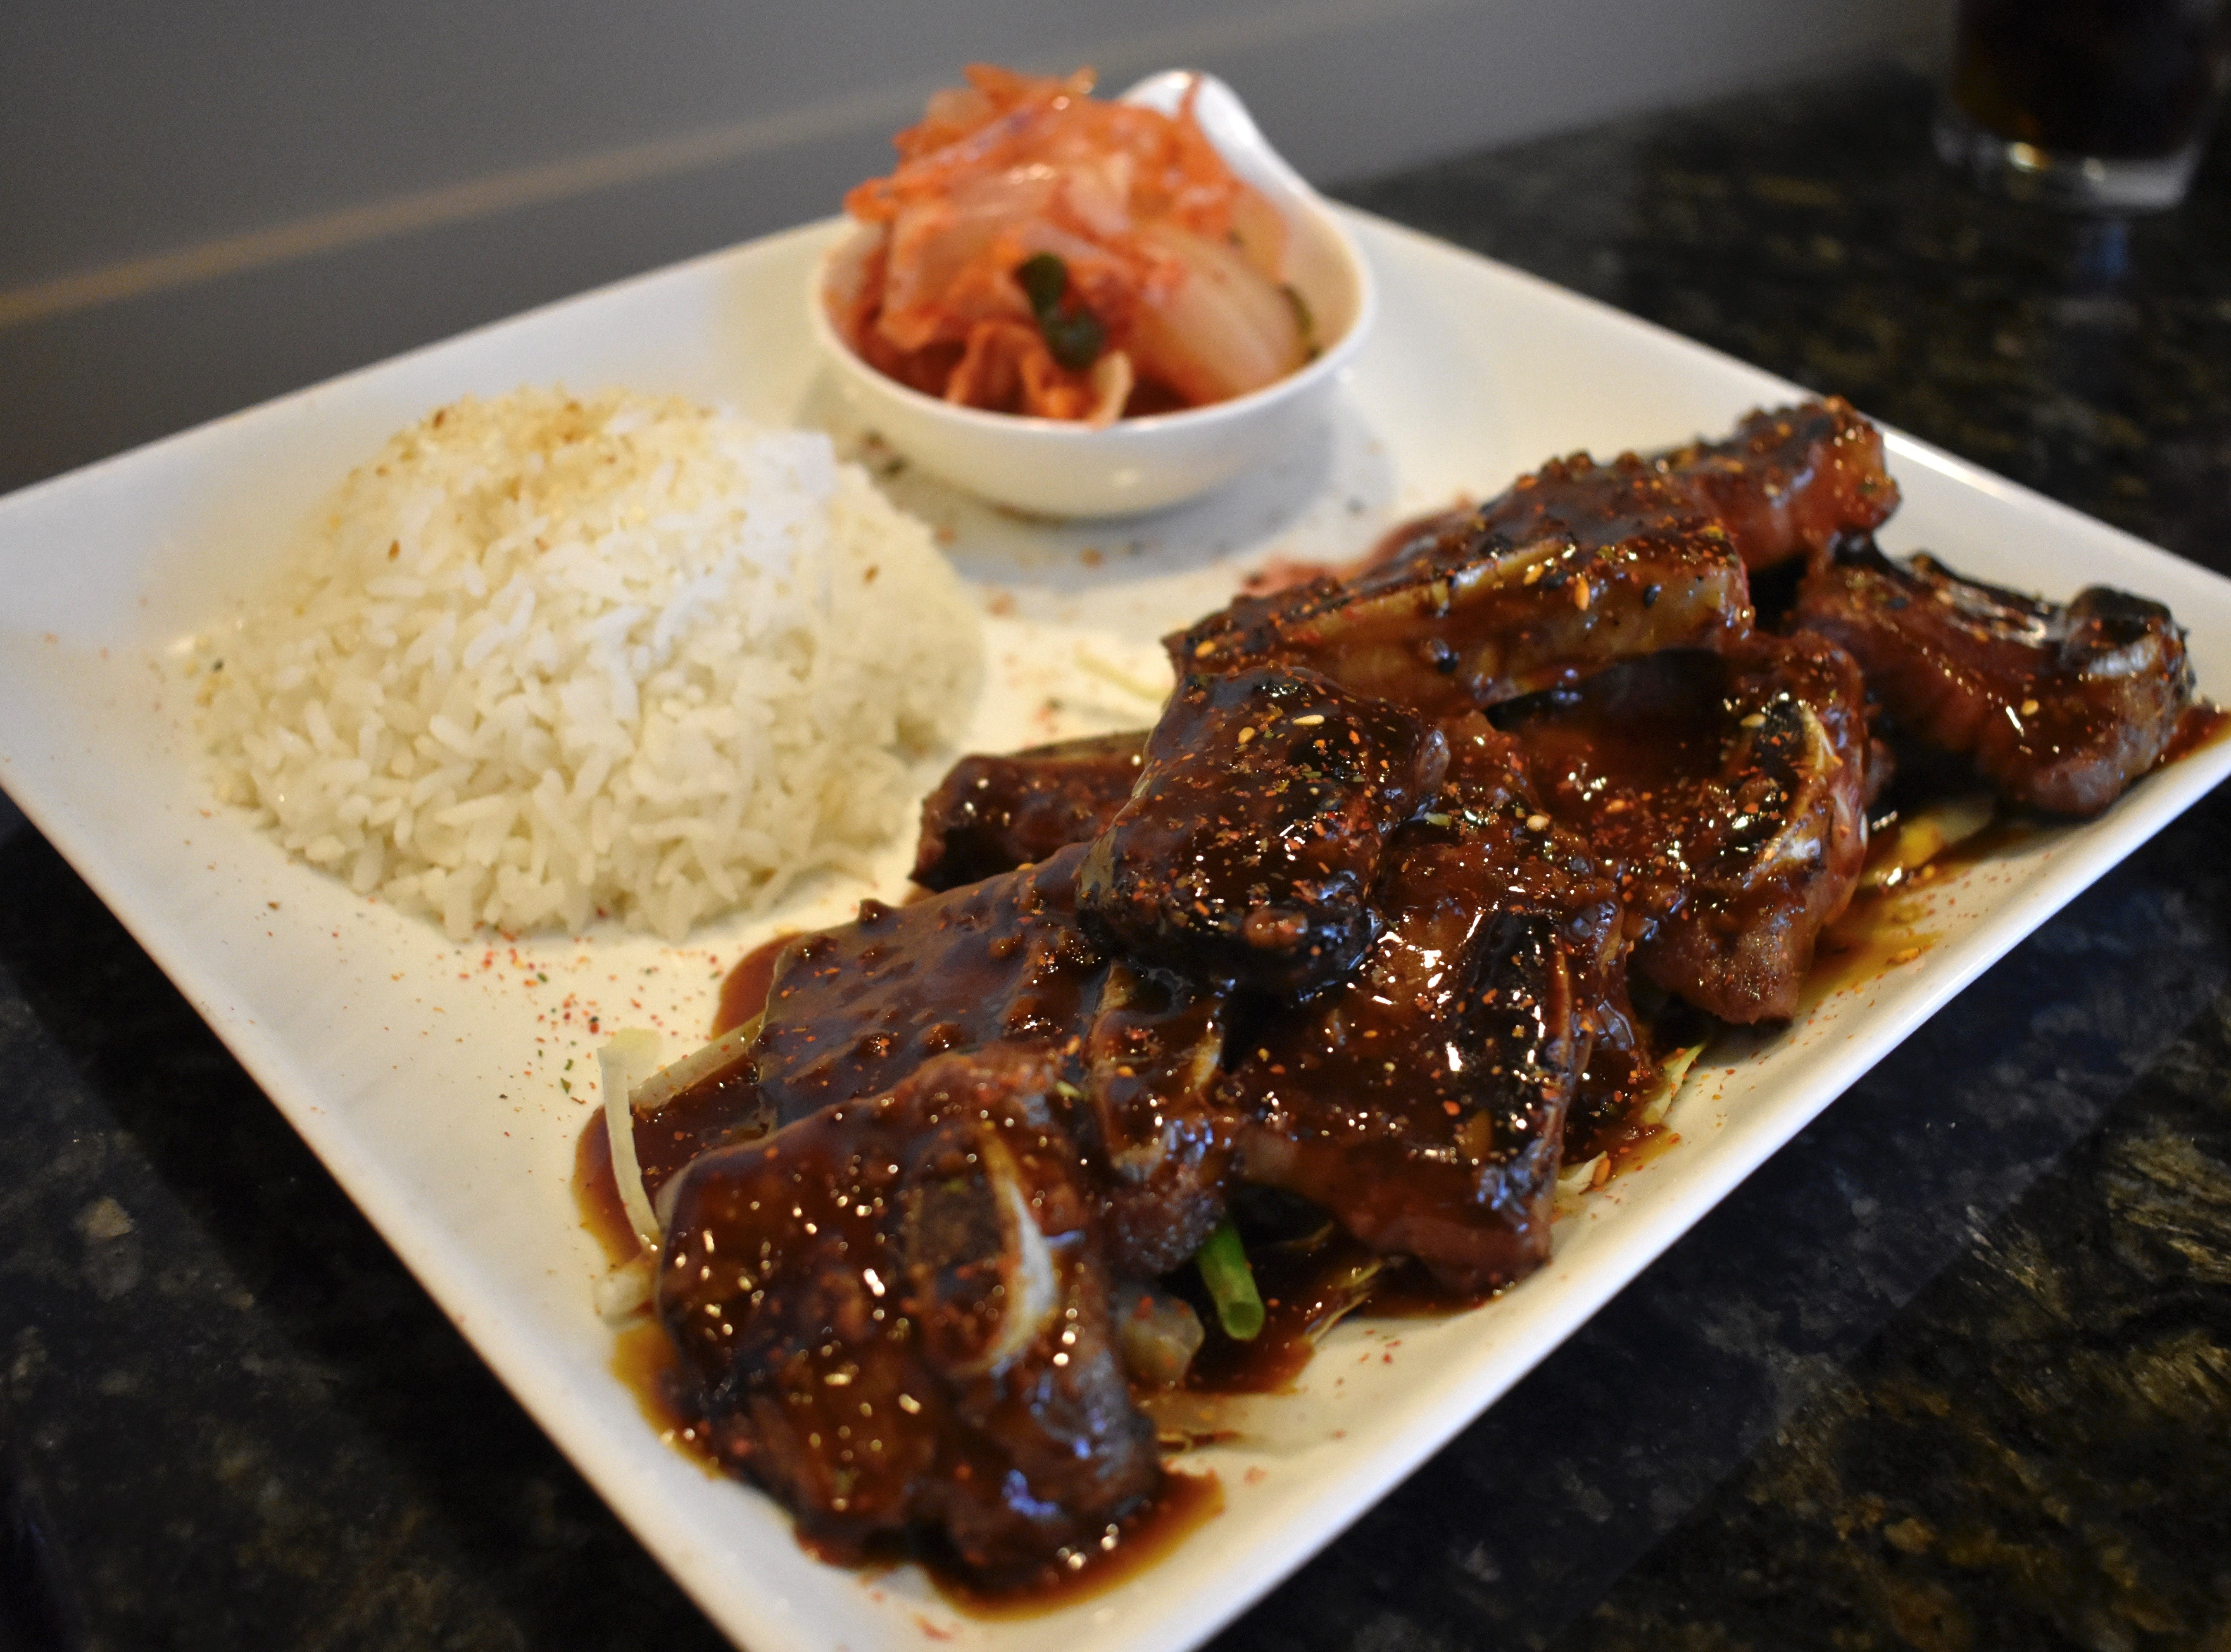 The Korean kalbi (barbecue ribs) at Kobe Steak and Seafood in Redding.